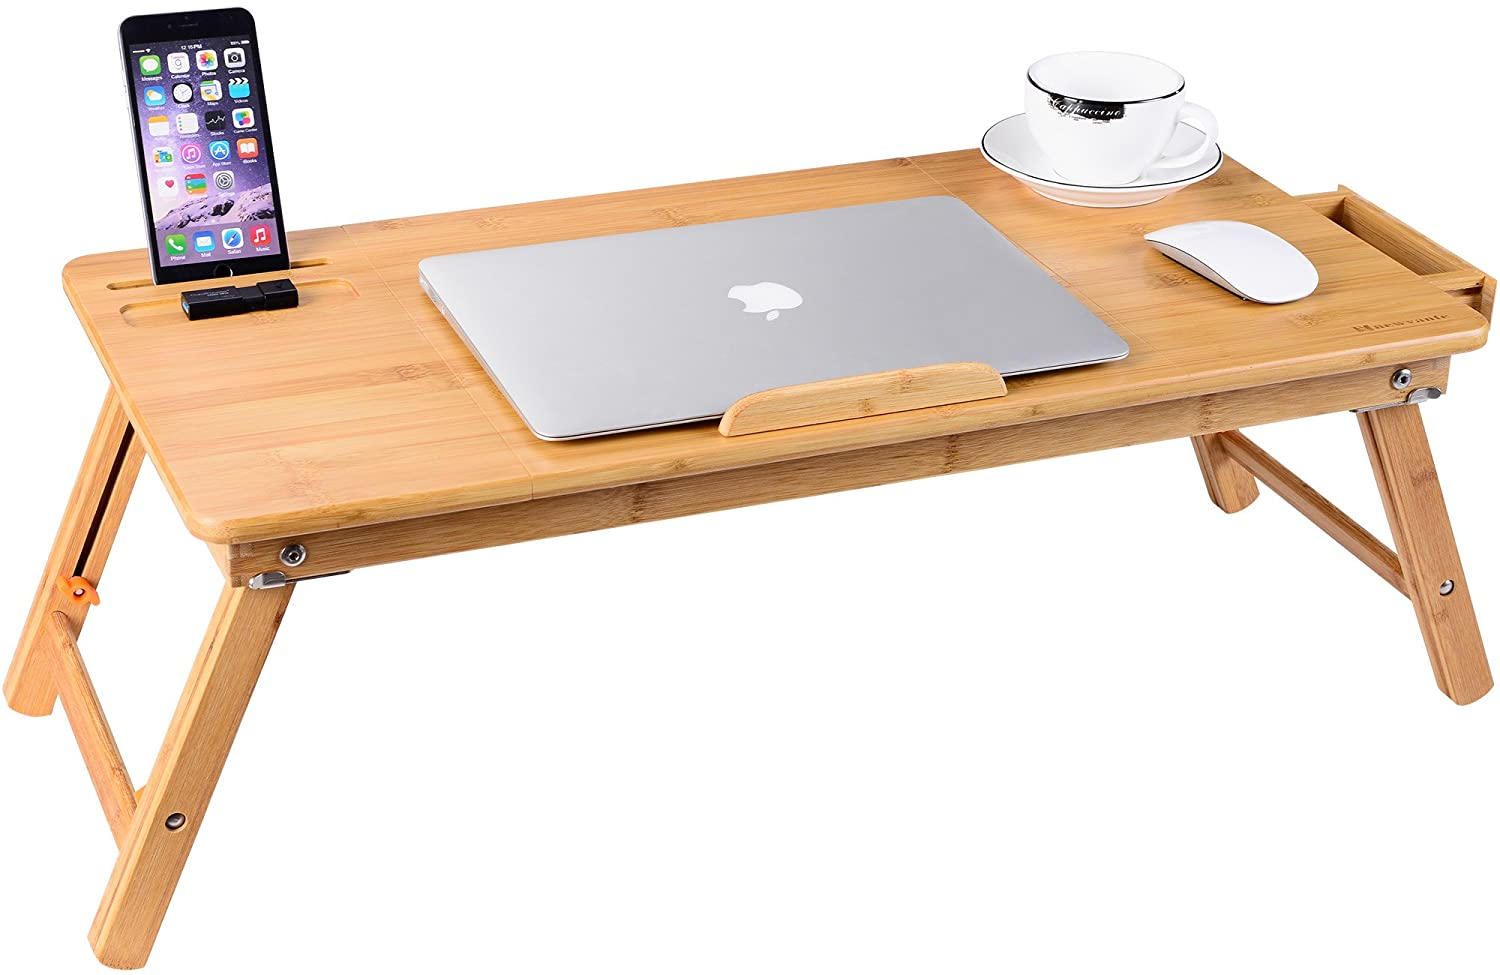 Lap Desk Nnewvante Foldable Bamboo Table Adjustable Tray